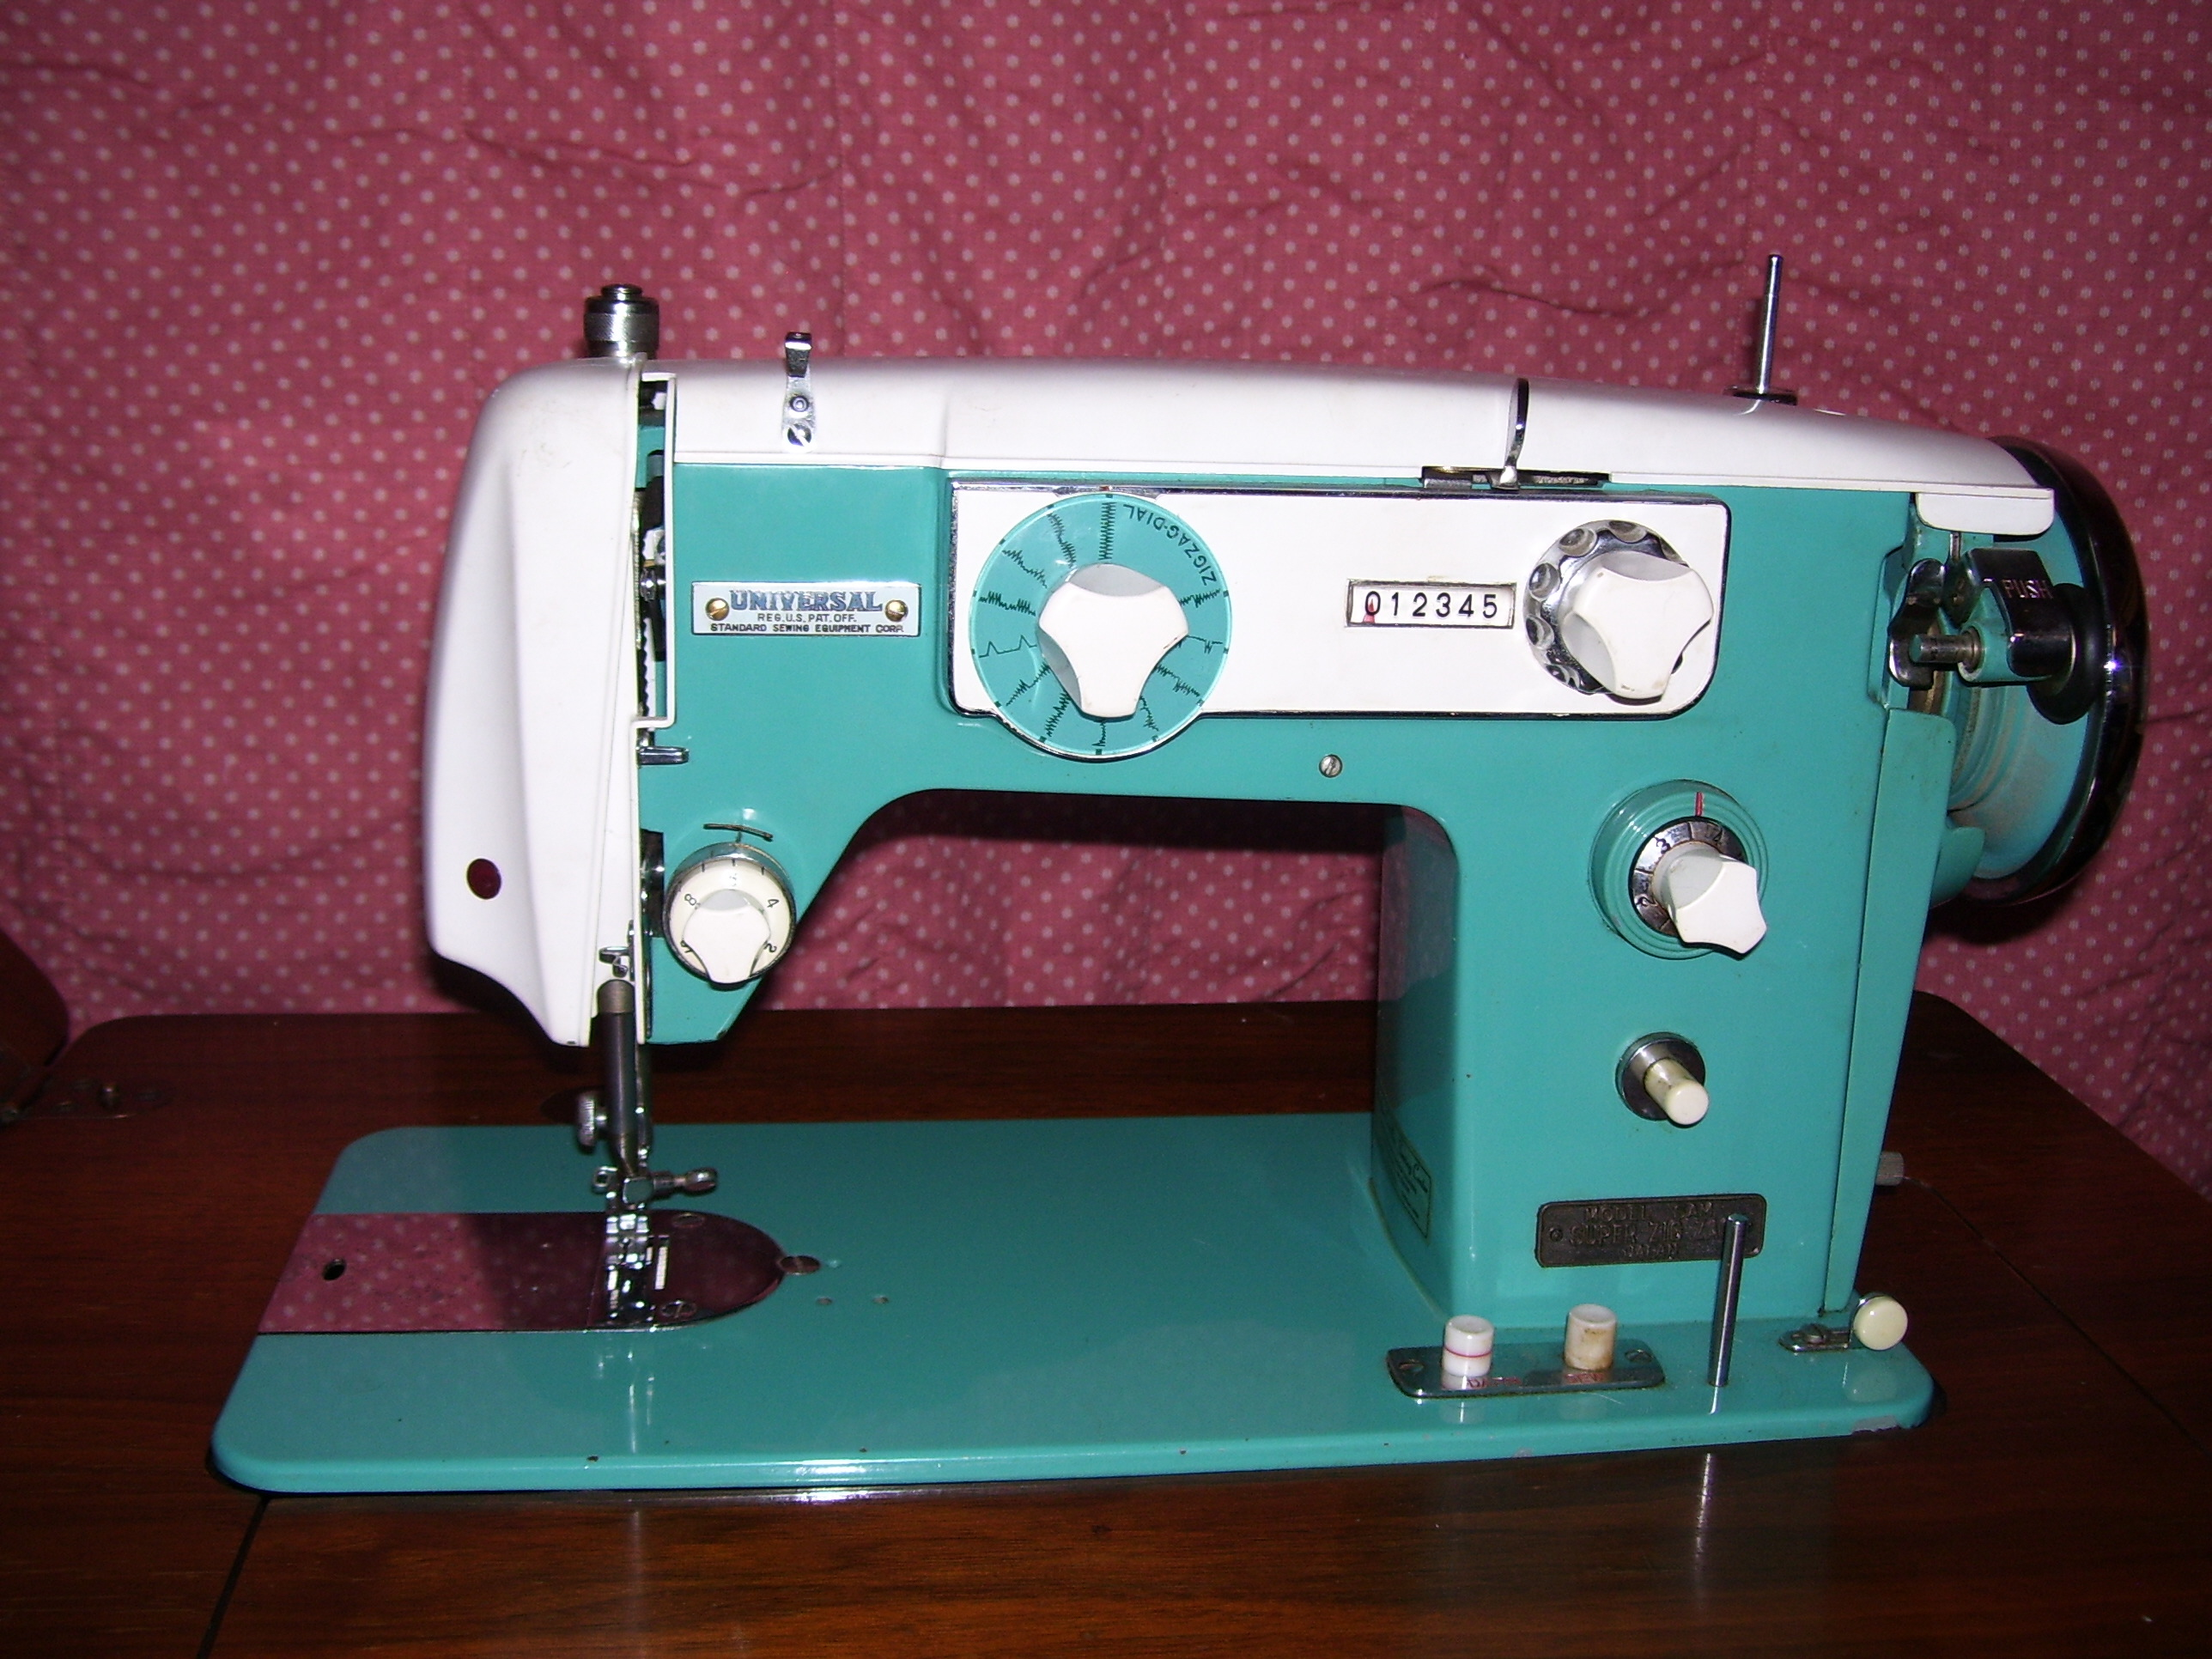 Vintage Japanese Badged Sewing Machine With Fancy